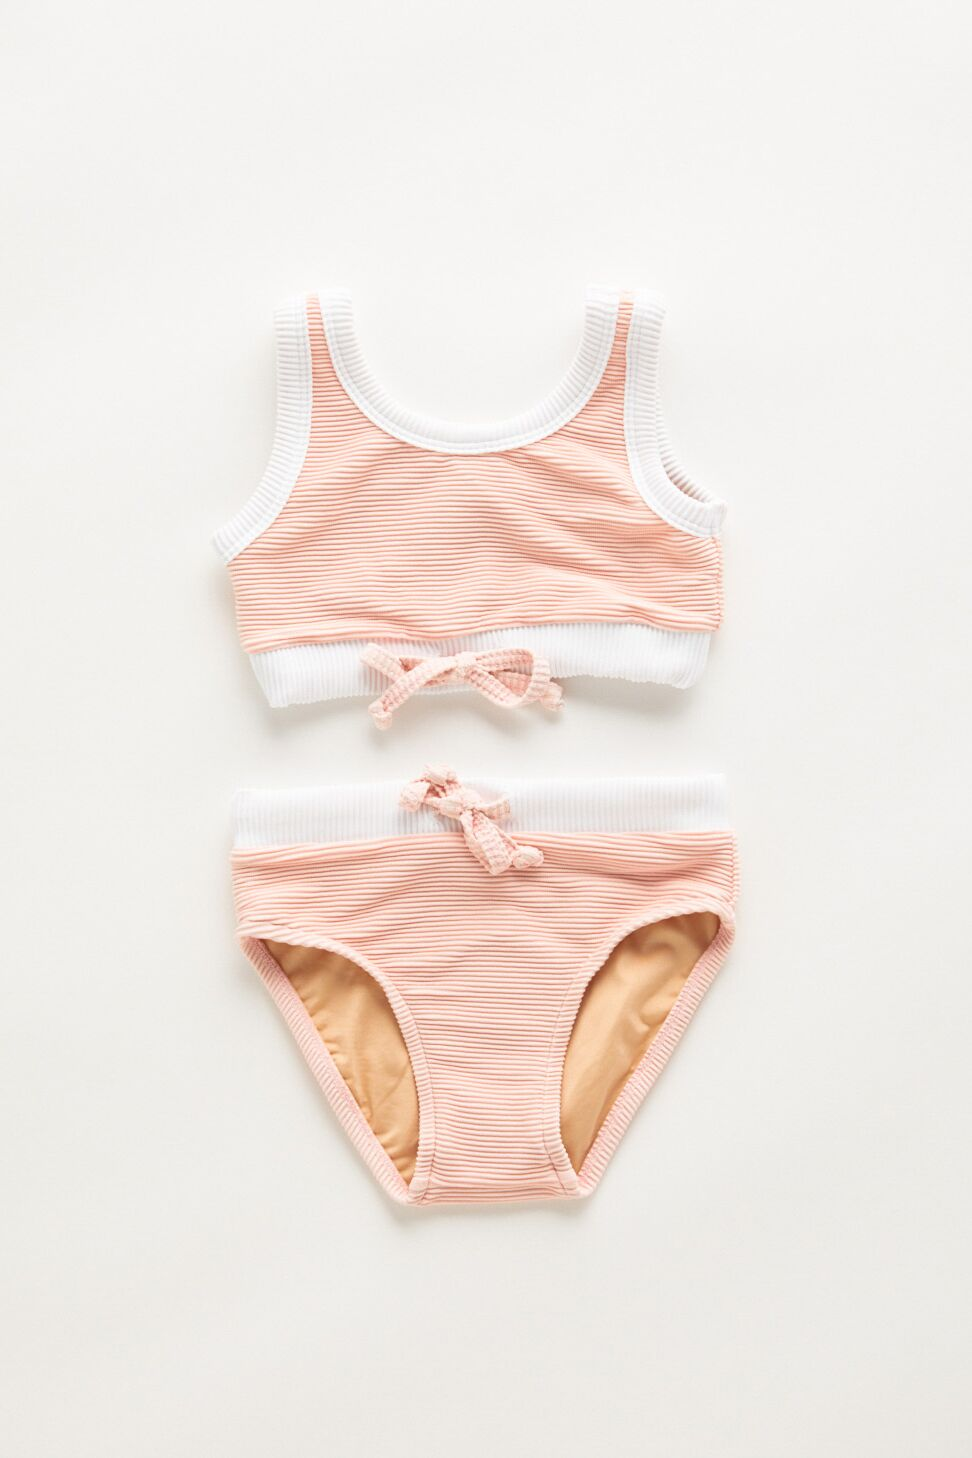 Zulu & Zephyr Mini Band Bikini Blush